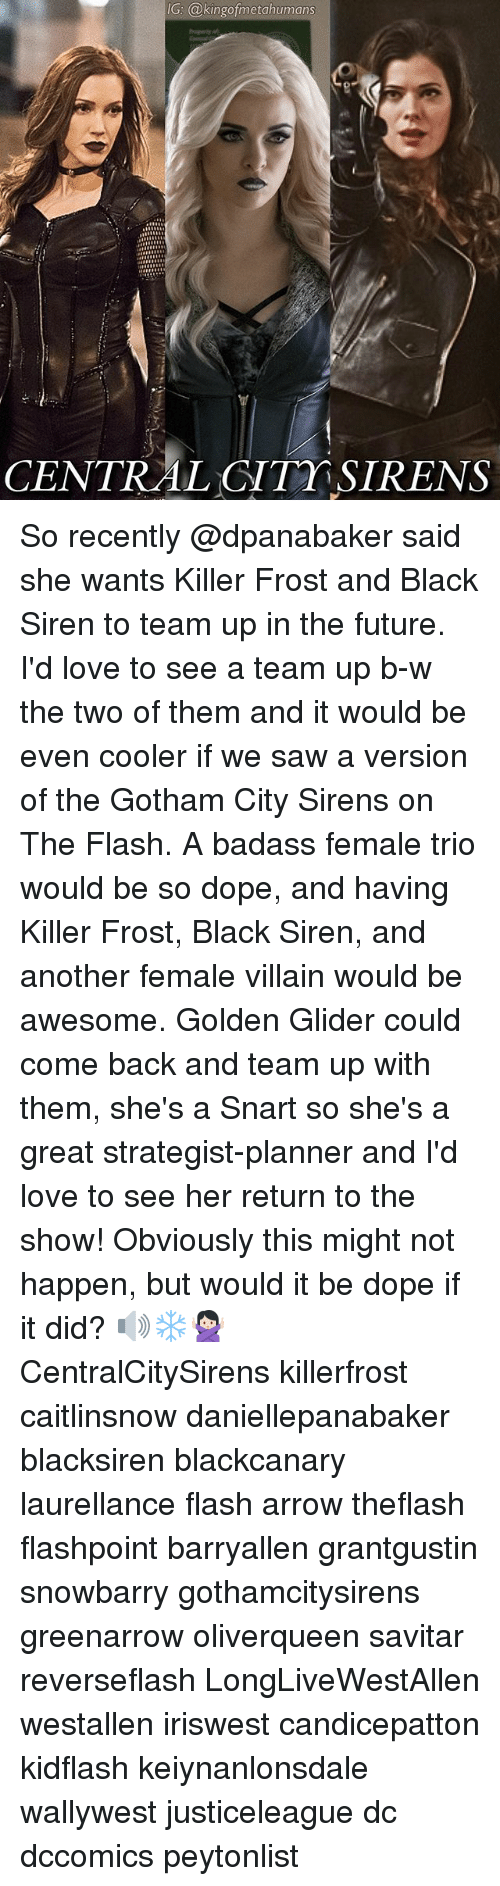 Sirening: IG: @kingofmetahumans  CENTRAL CITT SIRENS So recently @dpanabaker said she wants Killer Frost and Black Siren to team up in the future. I'd love to see a team up b-w the two of them and it would be even cooler if we saw a version of the Gotham City Sirens on The Flash. A badass female trio would be so dope, and having Killer Frost, Black Siren, and another female villain would be awesome. Golden Glider could come back and team up with them, she's a Snart so she's a great strategist-planner and I'd love to see her return to the show! Obviously this might not happen, but would it be dope if it did? 🔊❄️🙅🏻 CentralCitySirens killerfrost caitlinsnow daniellepanabaker blacksiren blackcanary laurellance flash arrow theflash flashpoint barryallen grantgustin snowbarry gothamcitysirens greenarrow oliverqueen savitar reverseflash LongLiveWestAllen westallen iriswest candicepatton kidflash keiynanlonsdale wallywest justiceleague dc dccomics peytonlist